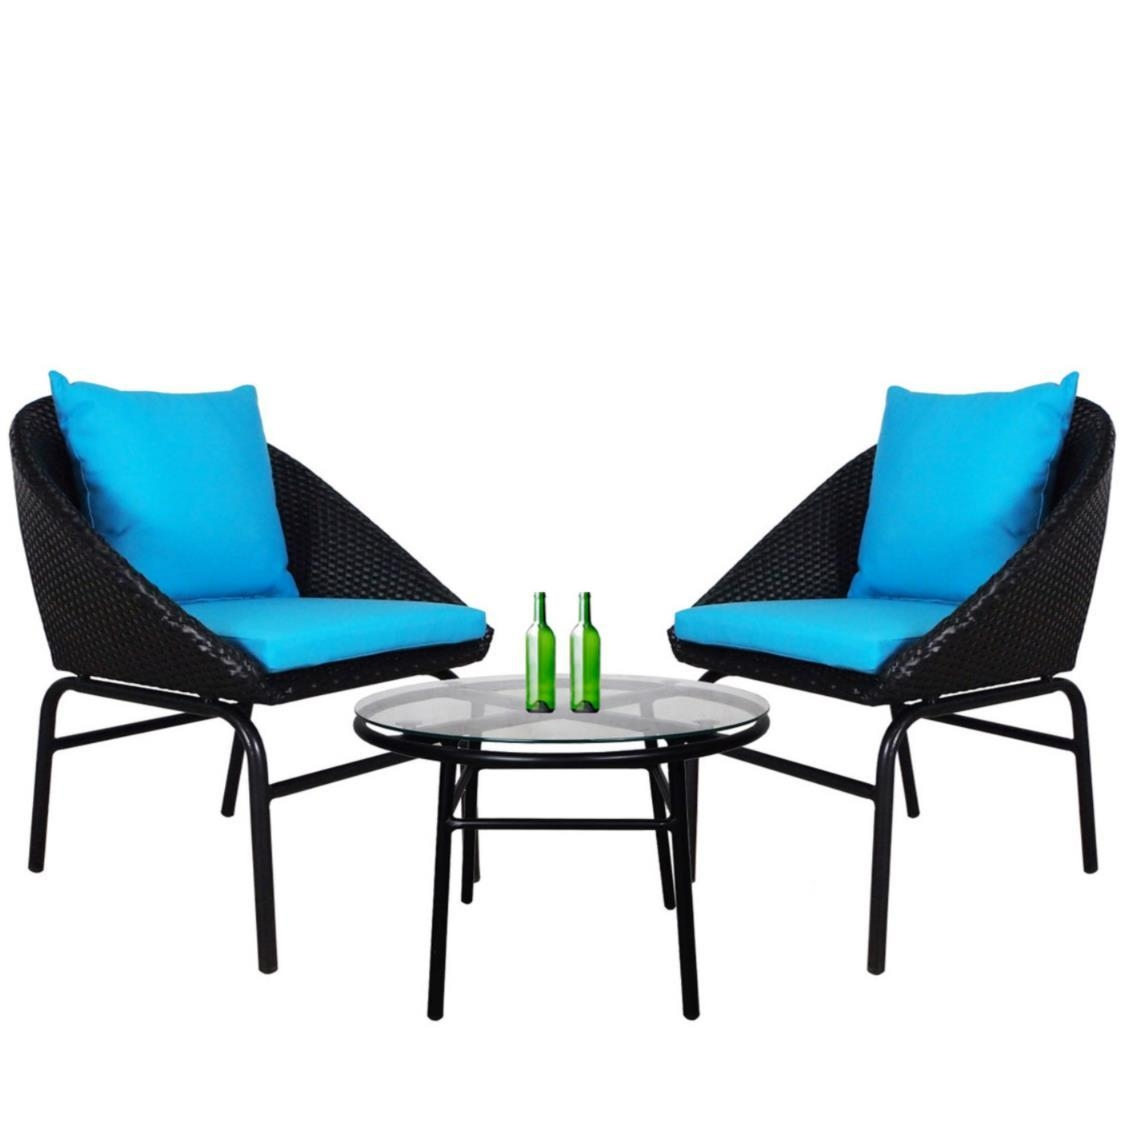 Miami Patio Set with Blue Cushions